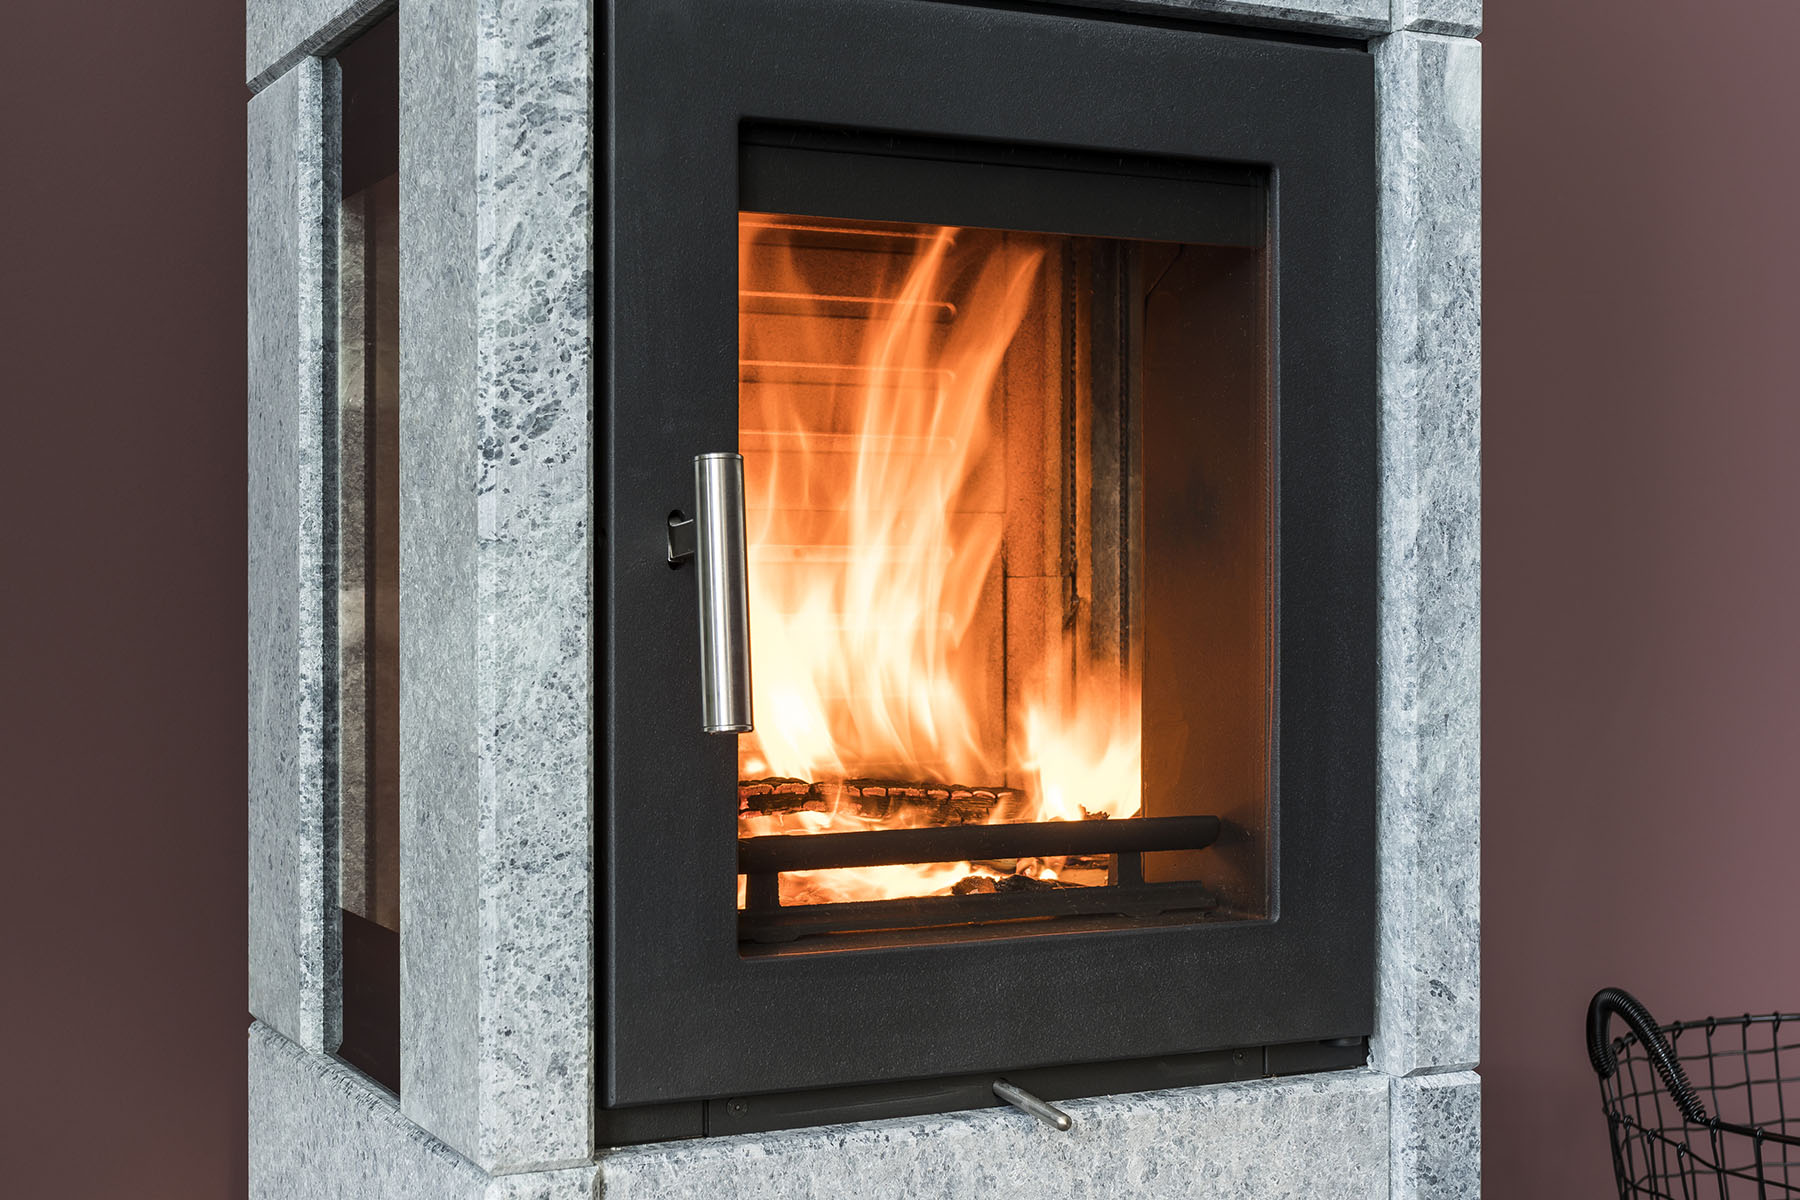 All of the handles on our stoves are made of shiny steel with natural air cooling, which means they can be used even when the stove is hot.